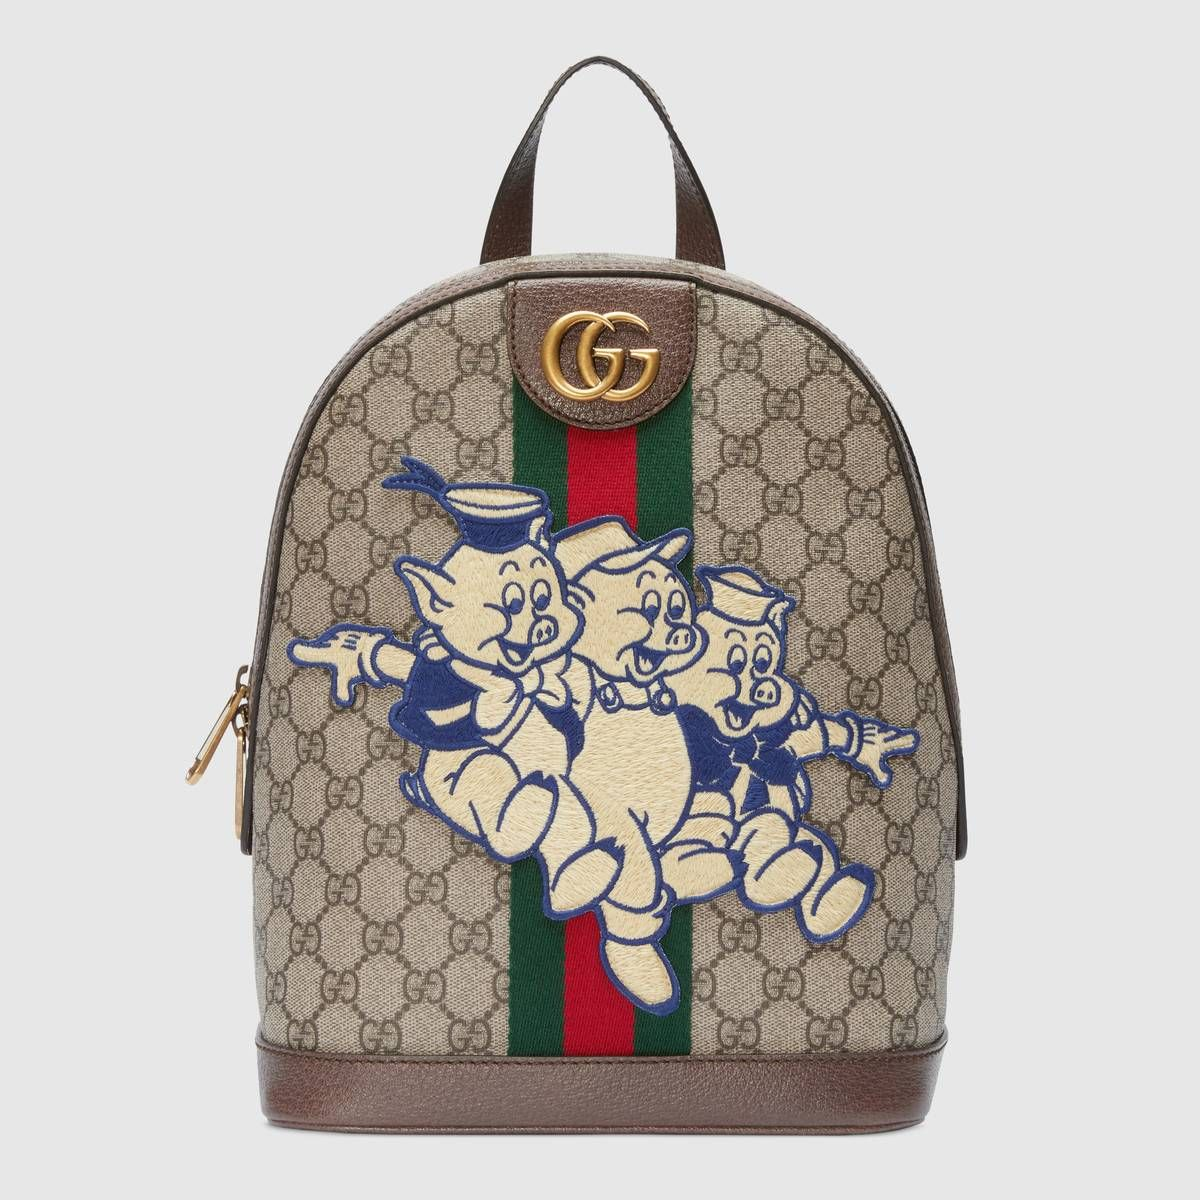 eff934c436b Shop the Ophidia GG backpack with Three Little Pigs by Gucci. In honor of  the Chinese calendar s year of the pig